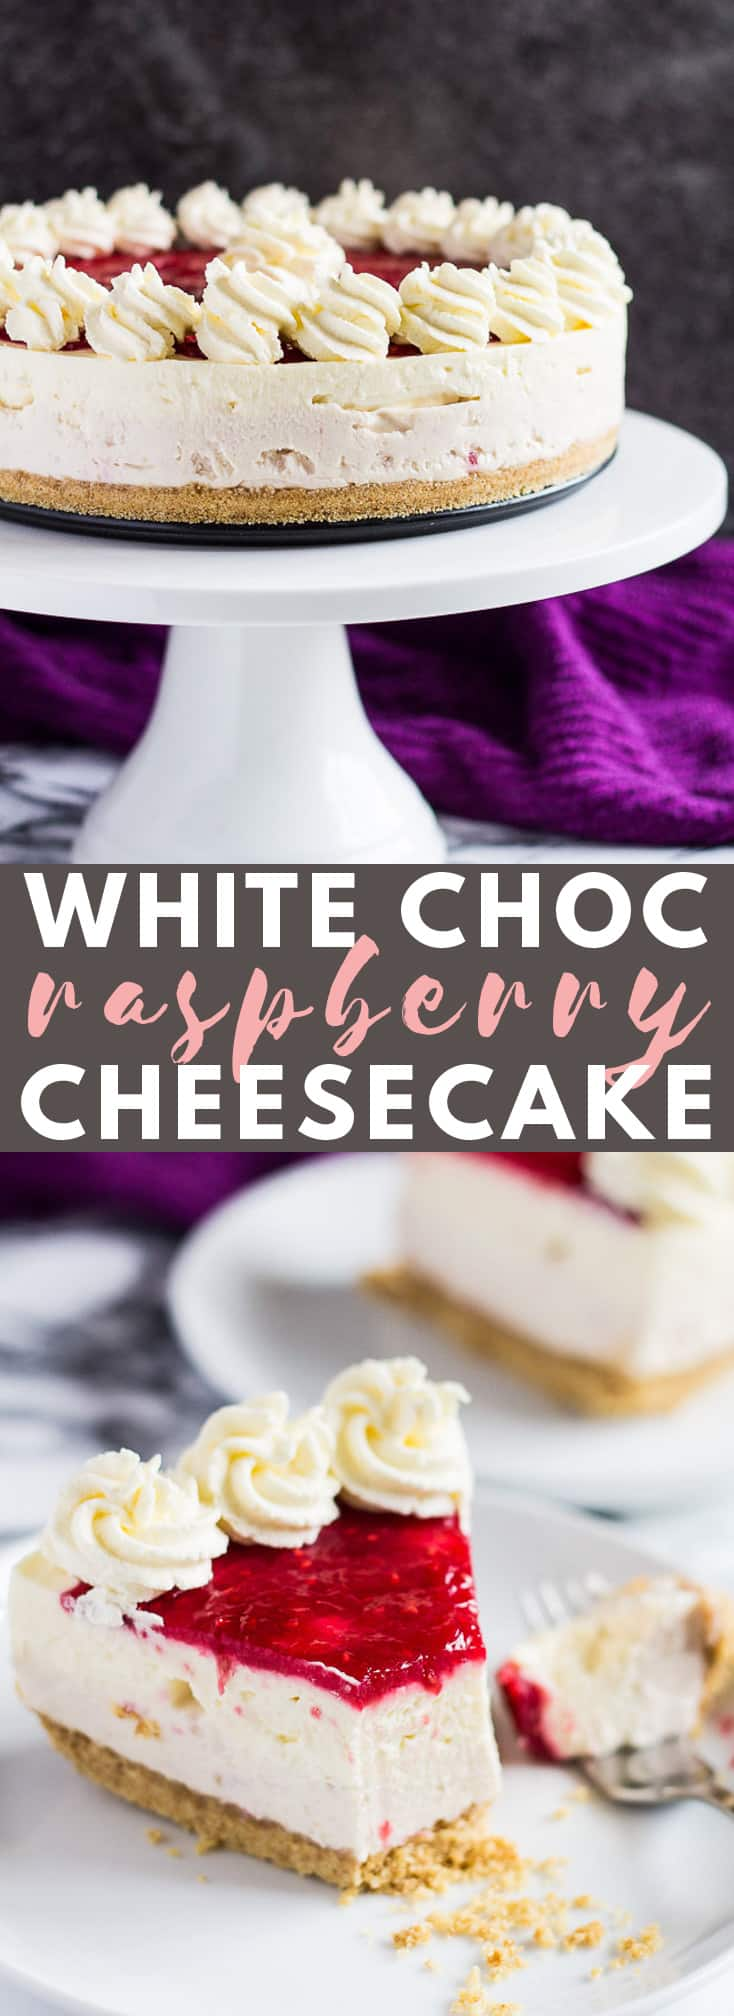 No-Bake White Chocolate Raspberry Cheesecake- Scrumptiously creamy no-bake white chocolate cheesecake infused and topped with fresh raspberry sauce and whipped cream! #whitechocolate #raspberrycheesecake #cheesecakerecipes